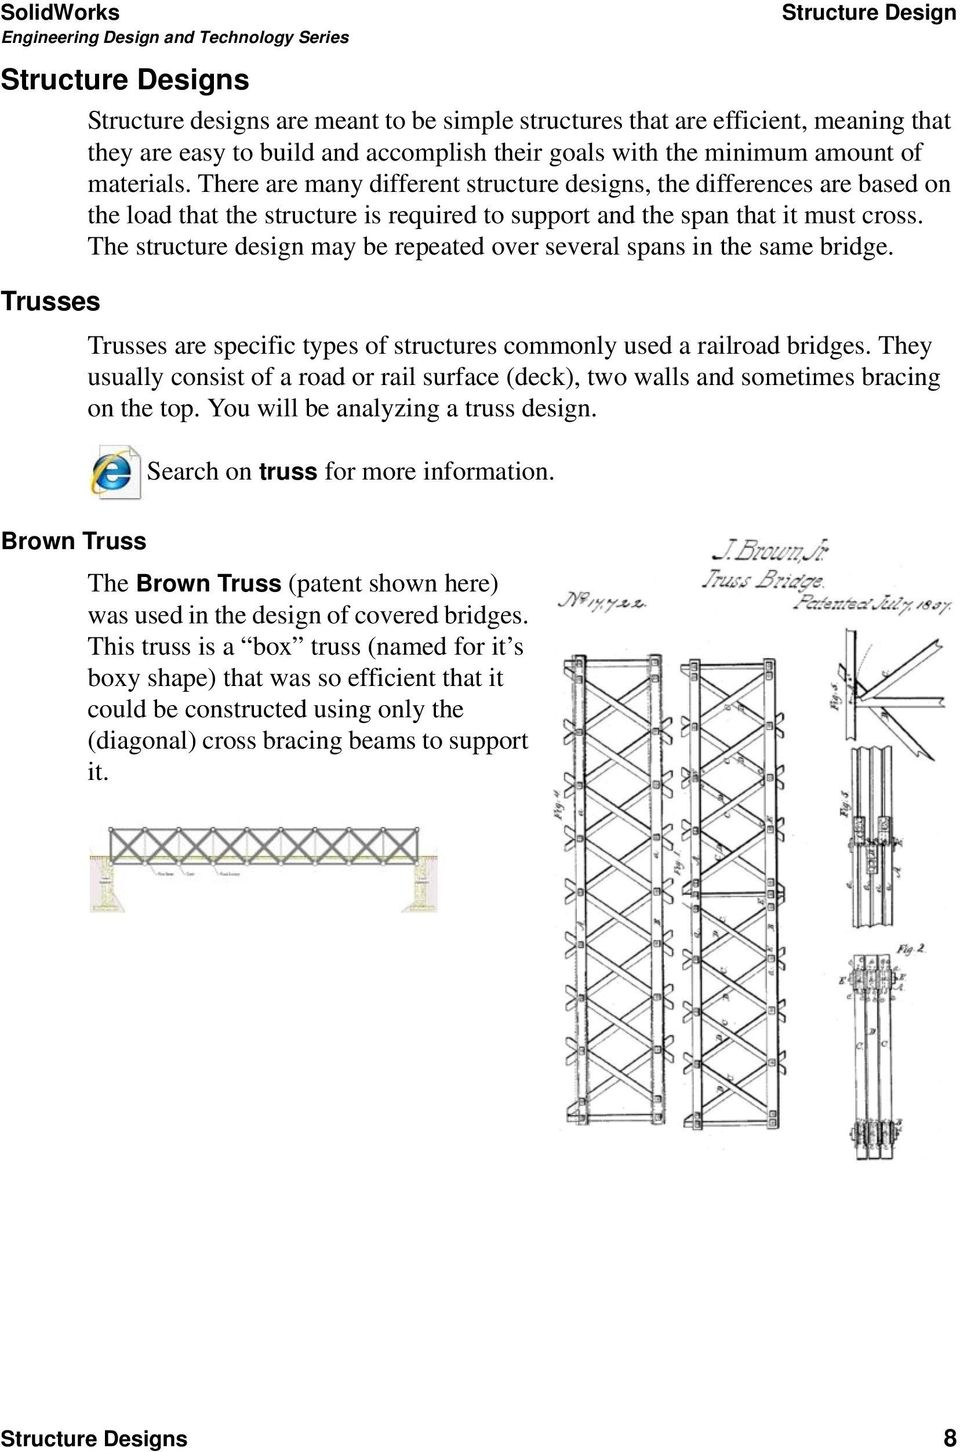 Bridge Design Project With Solidworks Software Put Picture Here Pdf Truss Diagram Through The Structure May Be Repeated Over Several Spans In Same Trusses